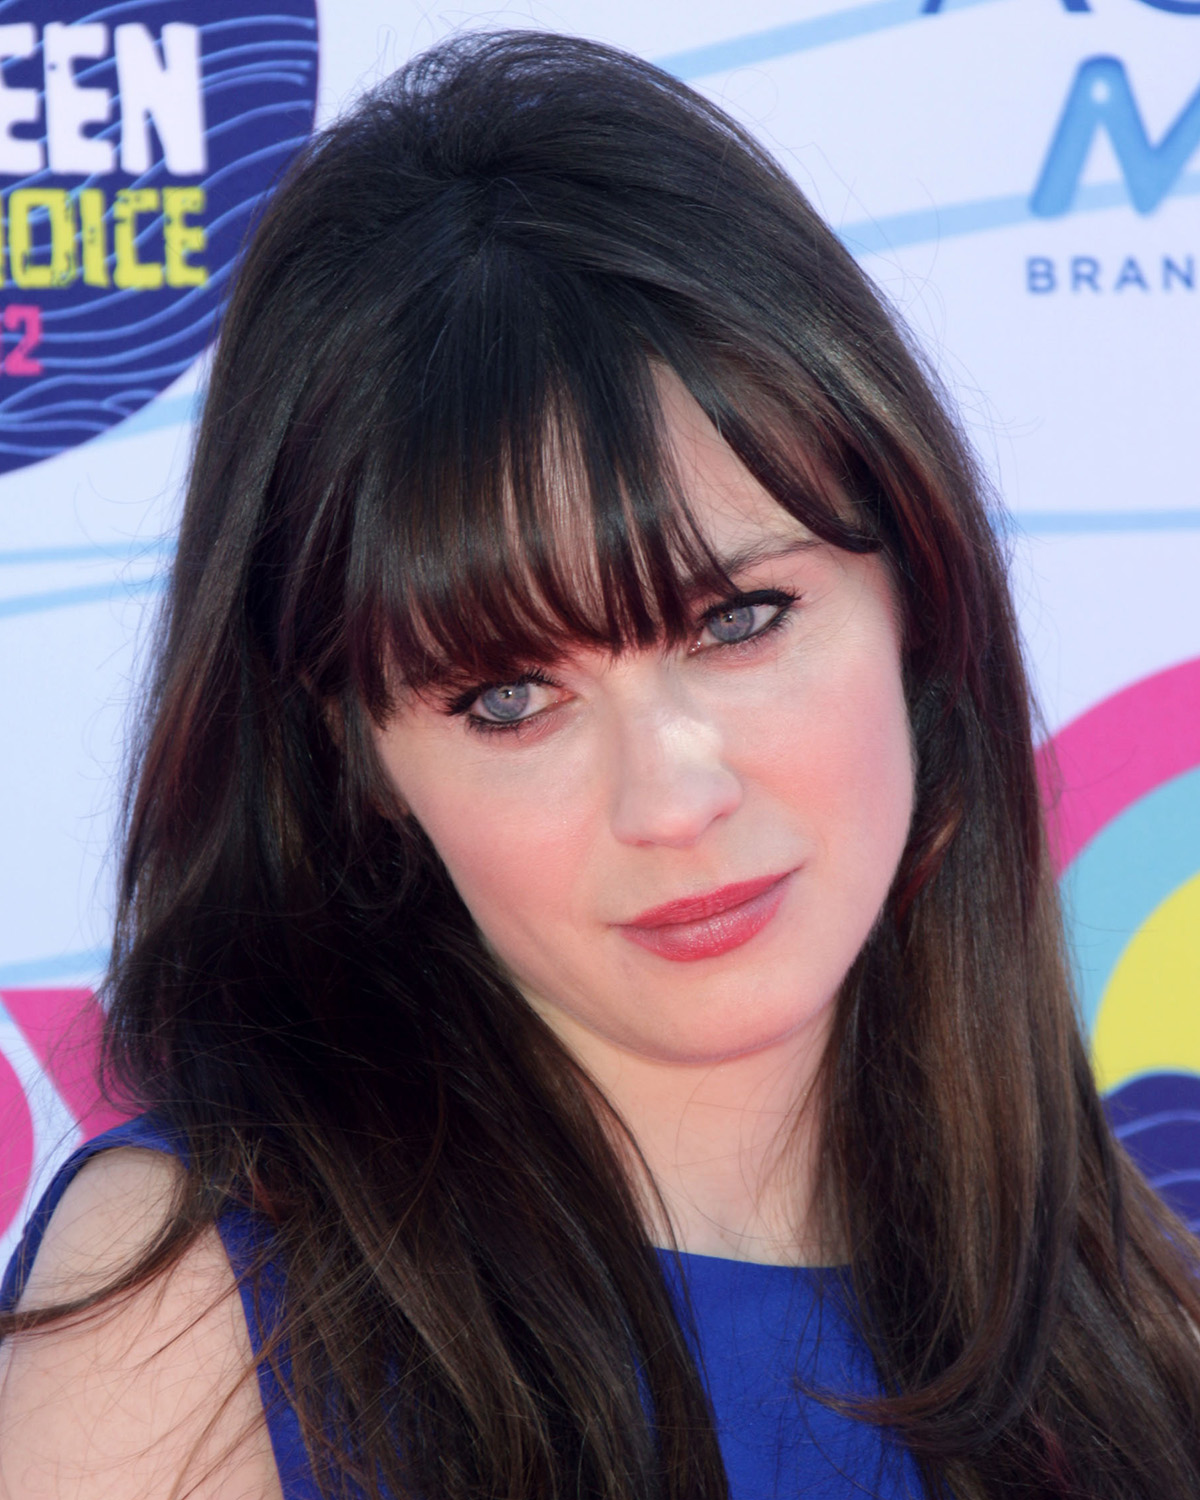 Sandra orlow facebook - Tduid300011_zooeydeschanel Jpg